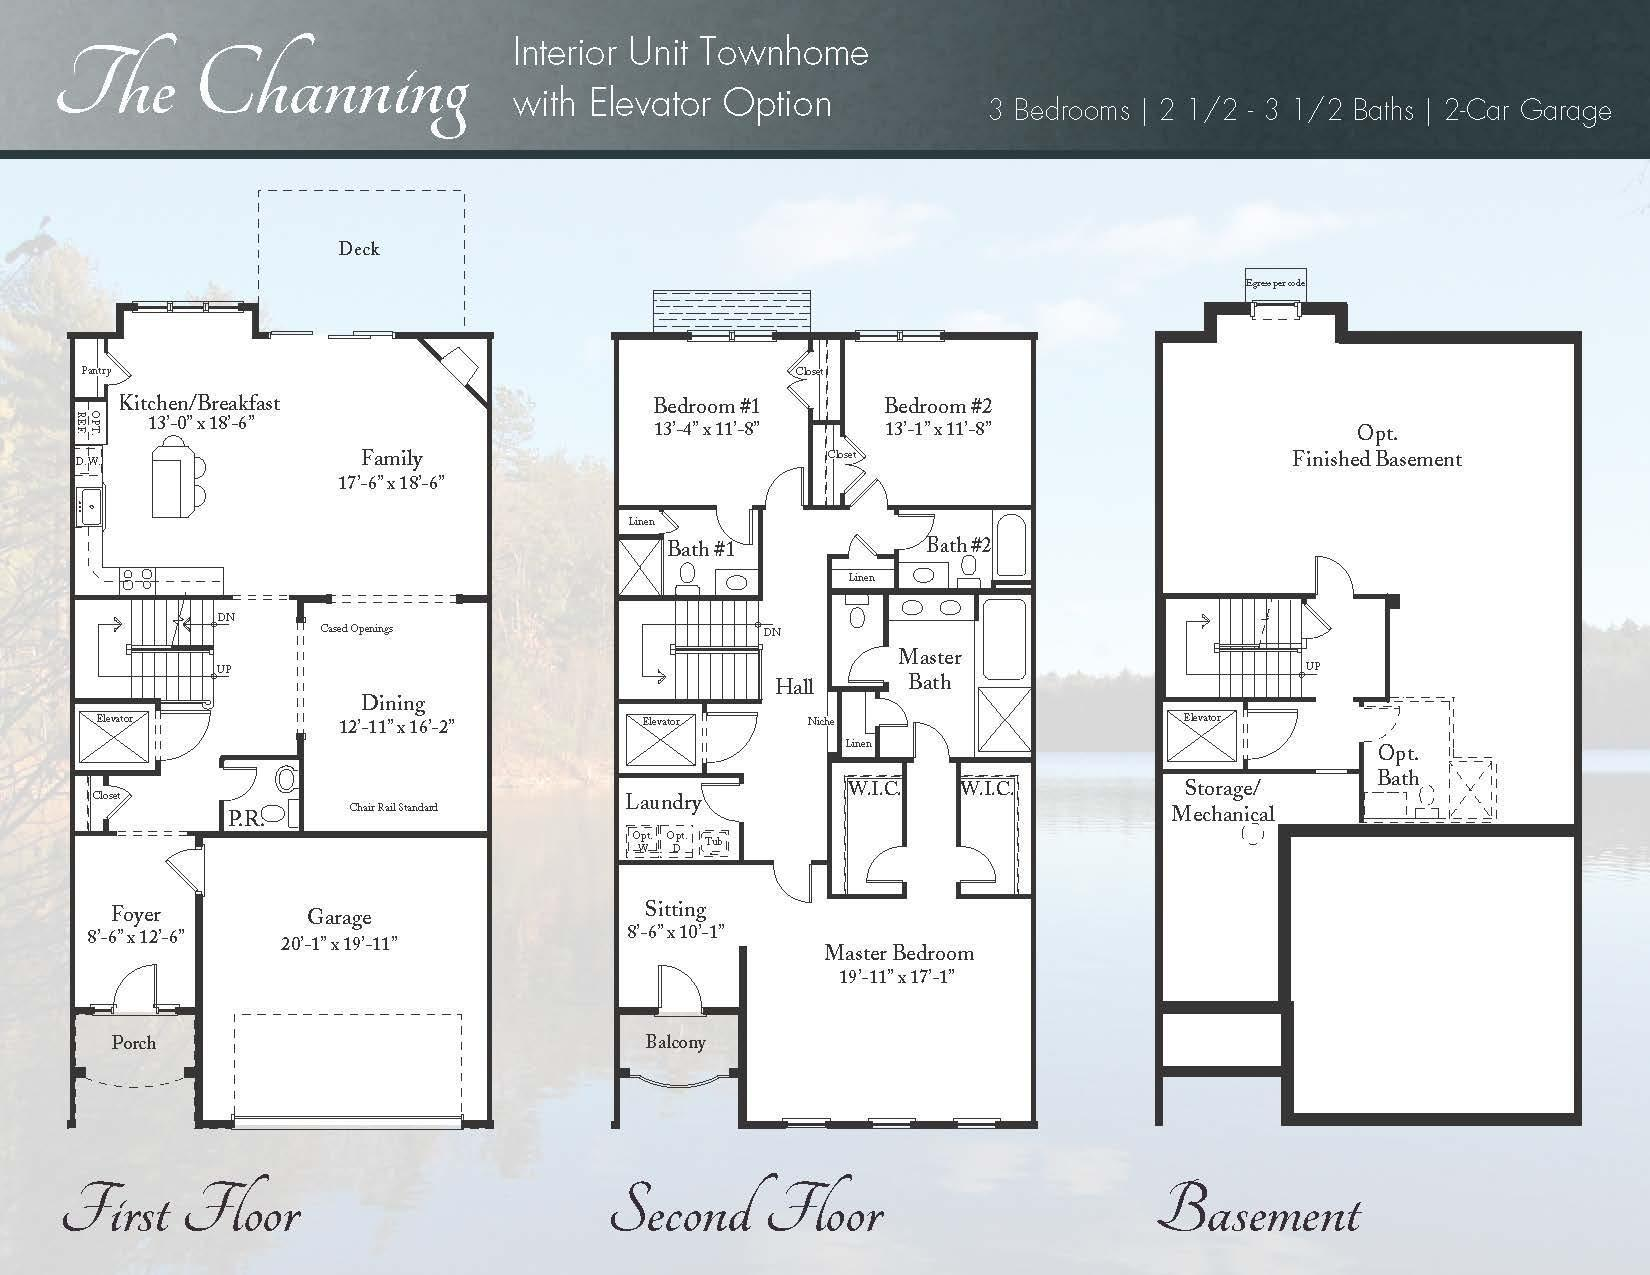 Elevator Schematic Plans Trusted Schematics Diagram Wiring For The Channing With Option County Builders Inc Controller